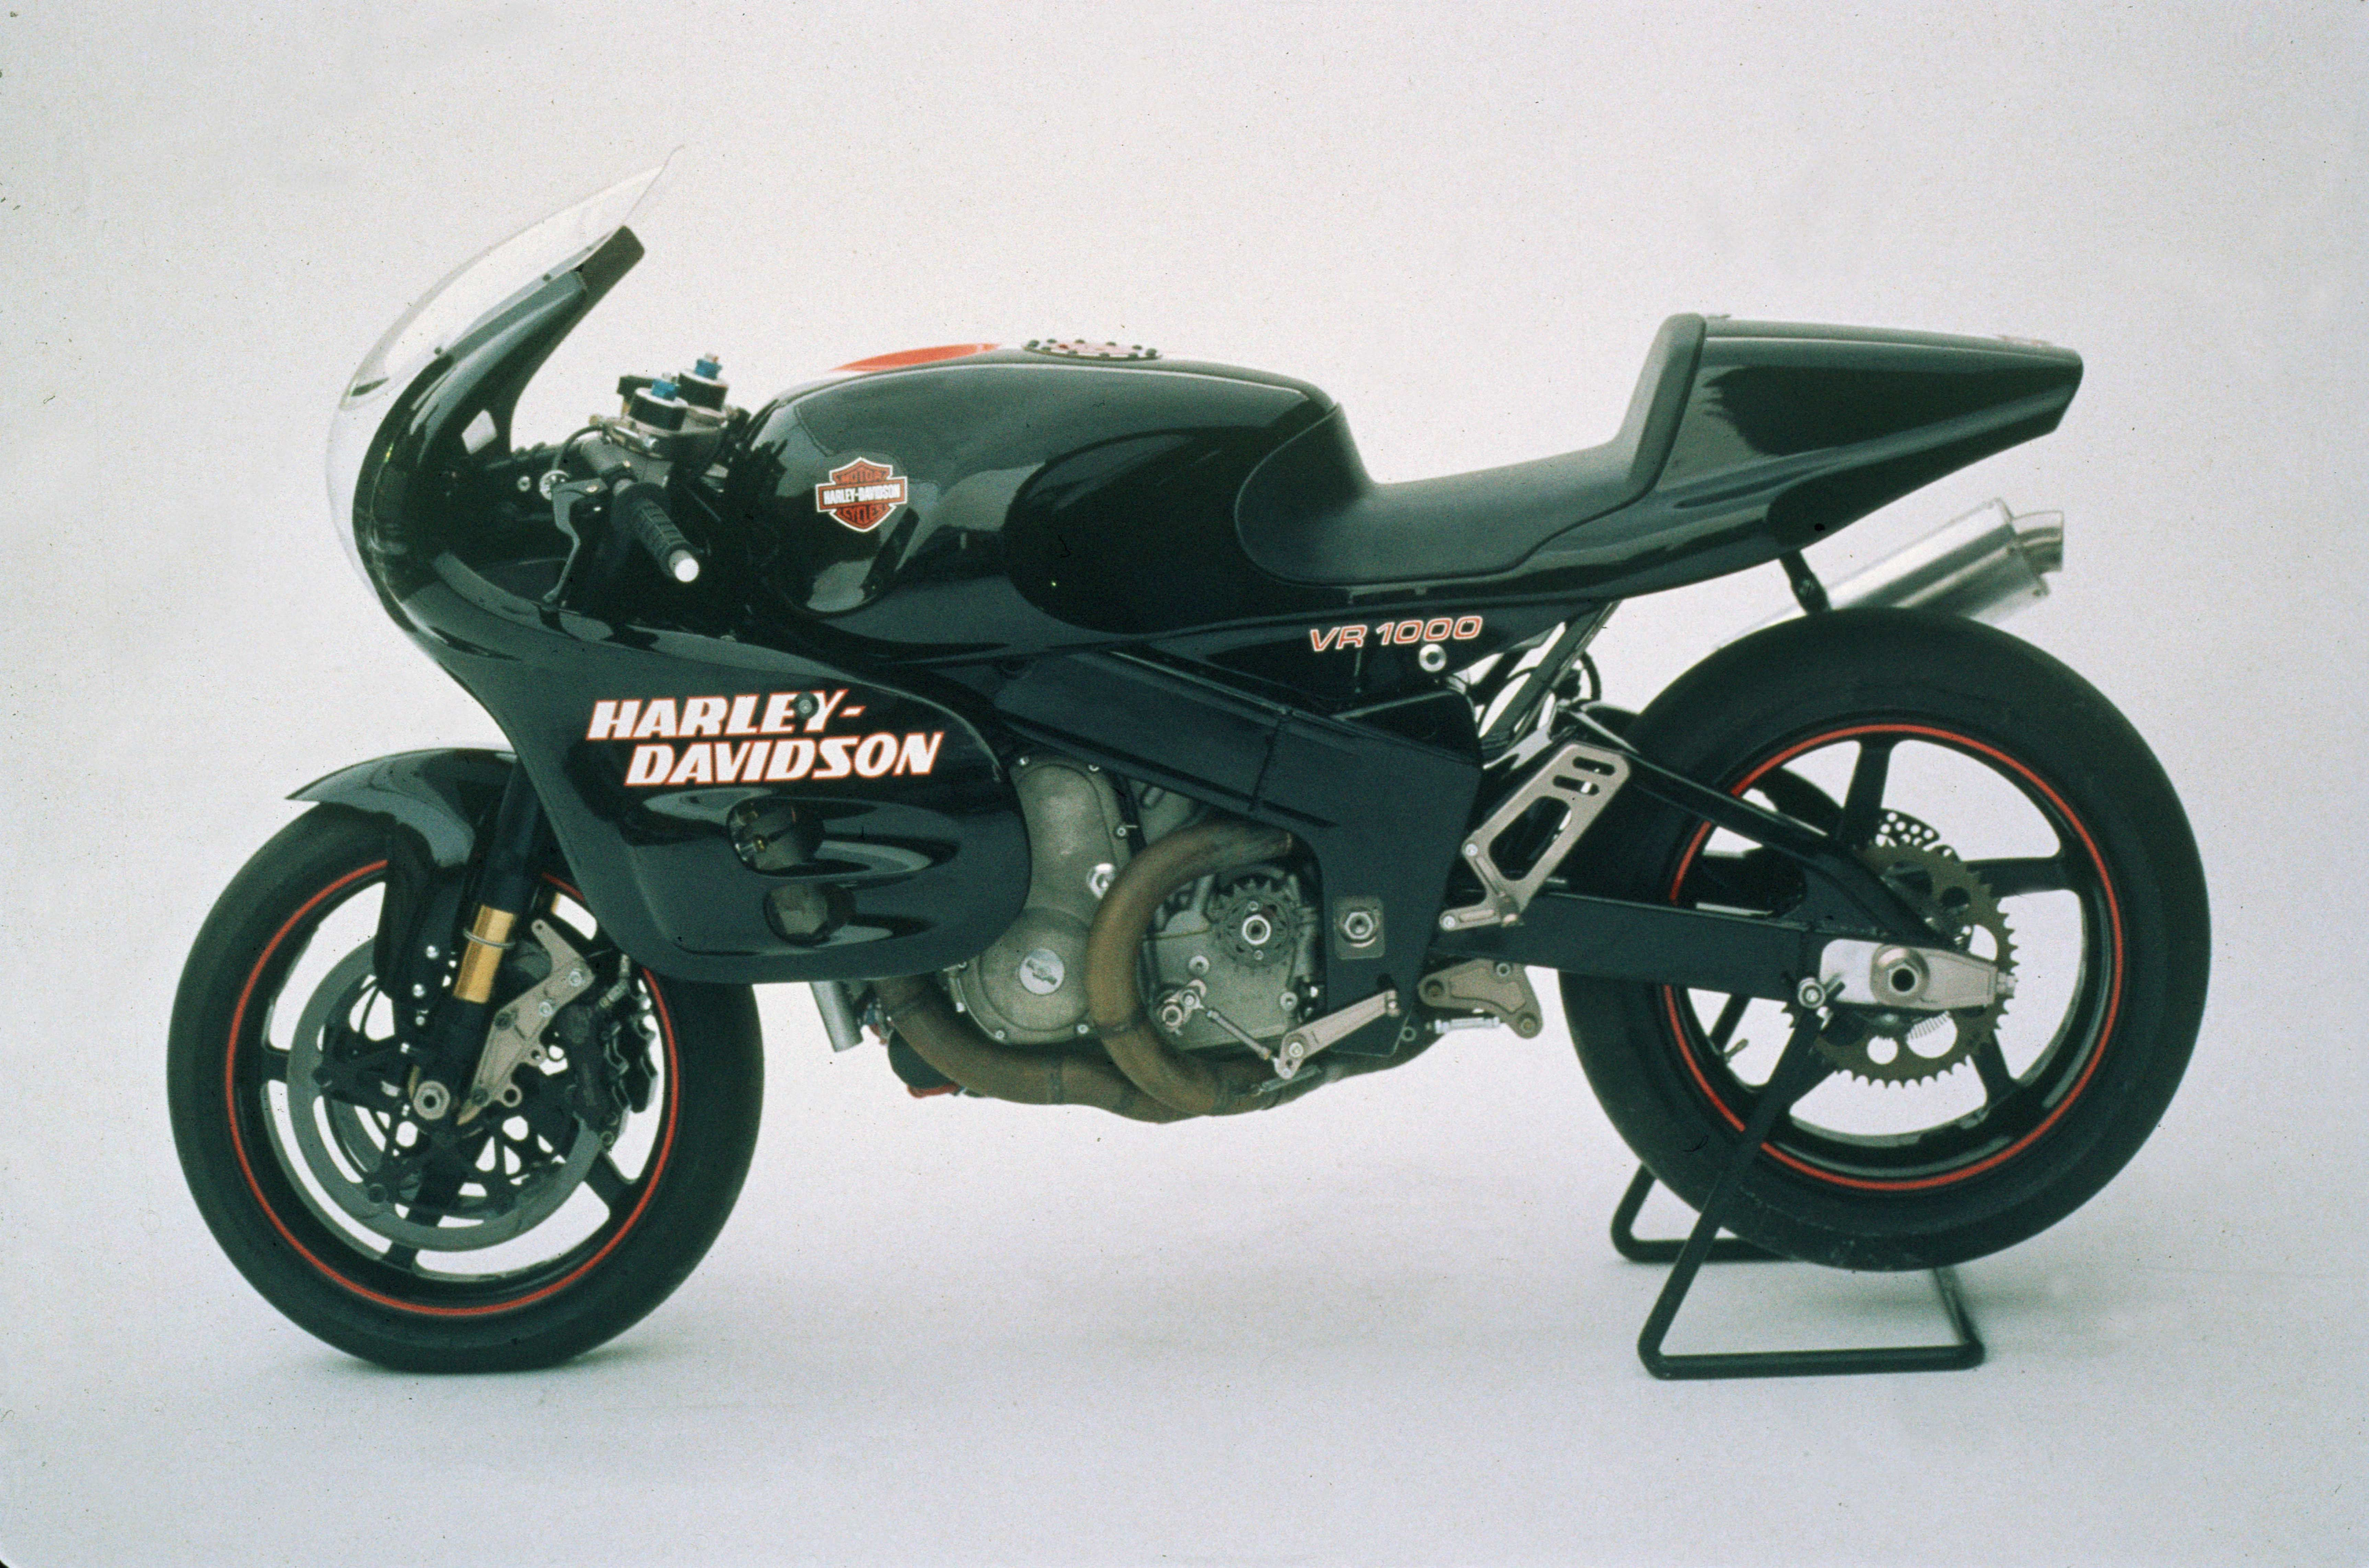 This dual overcam, liquid cooled motorcycle signaled